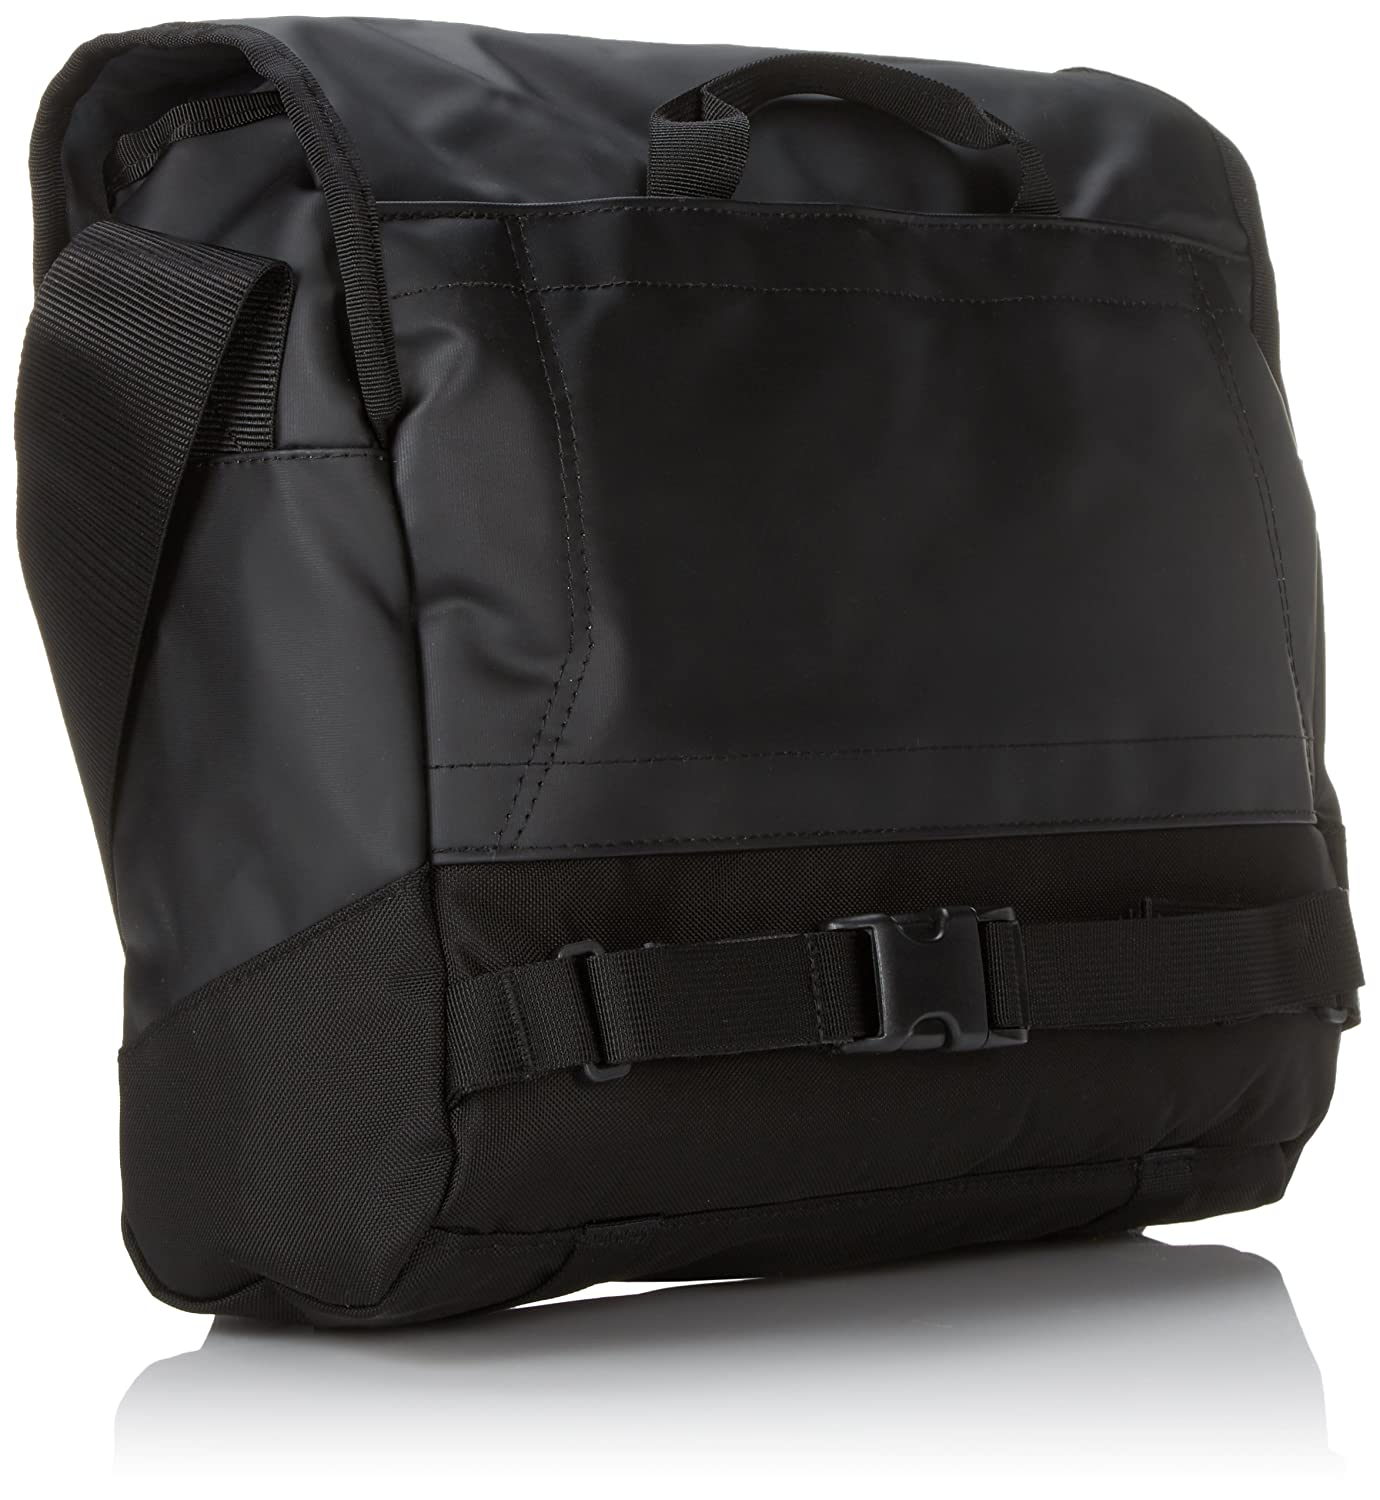 bfffb8333 North Face Men's BC Messenger Backpack TNF Black, Small: Amazon.co ...